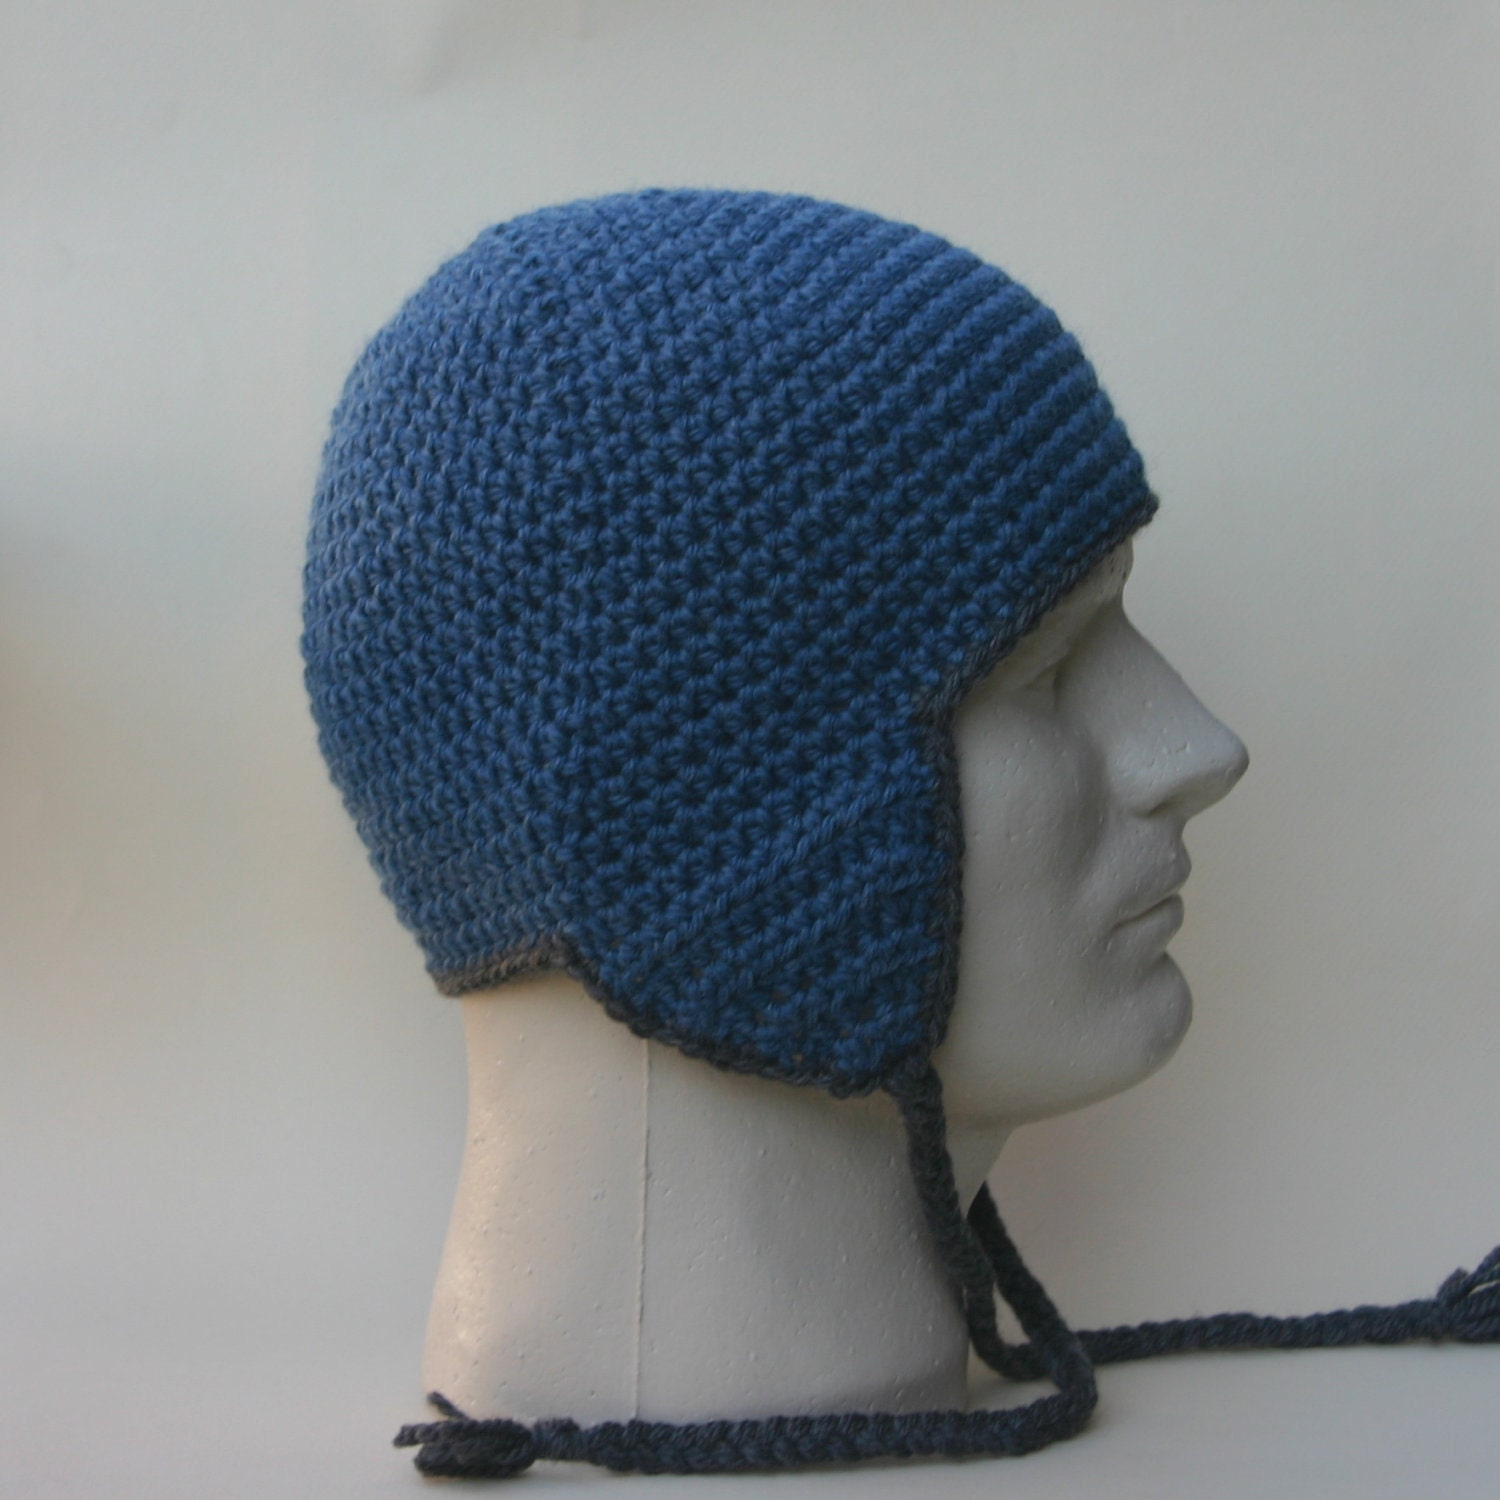 Crochet Hats For Men With Ear Flaps